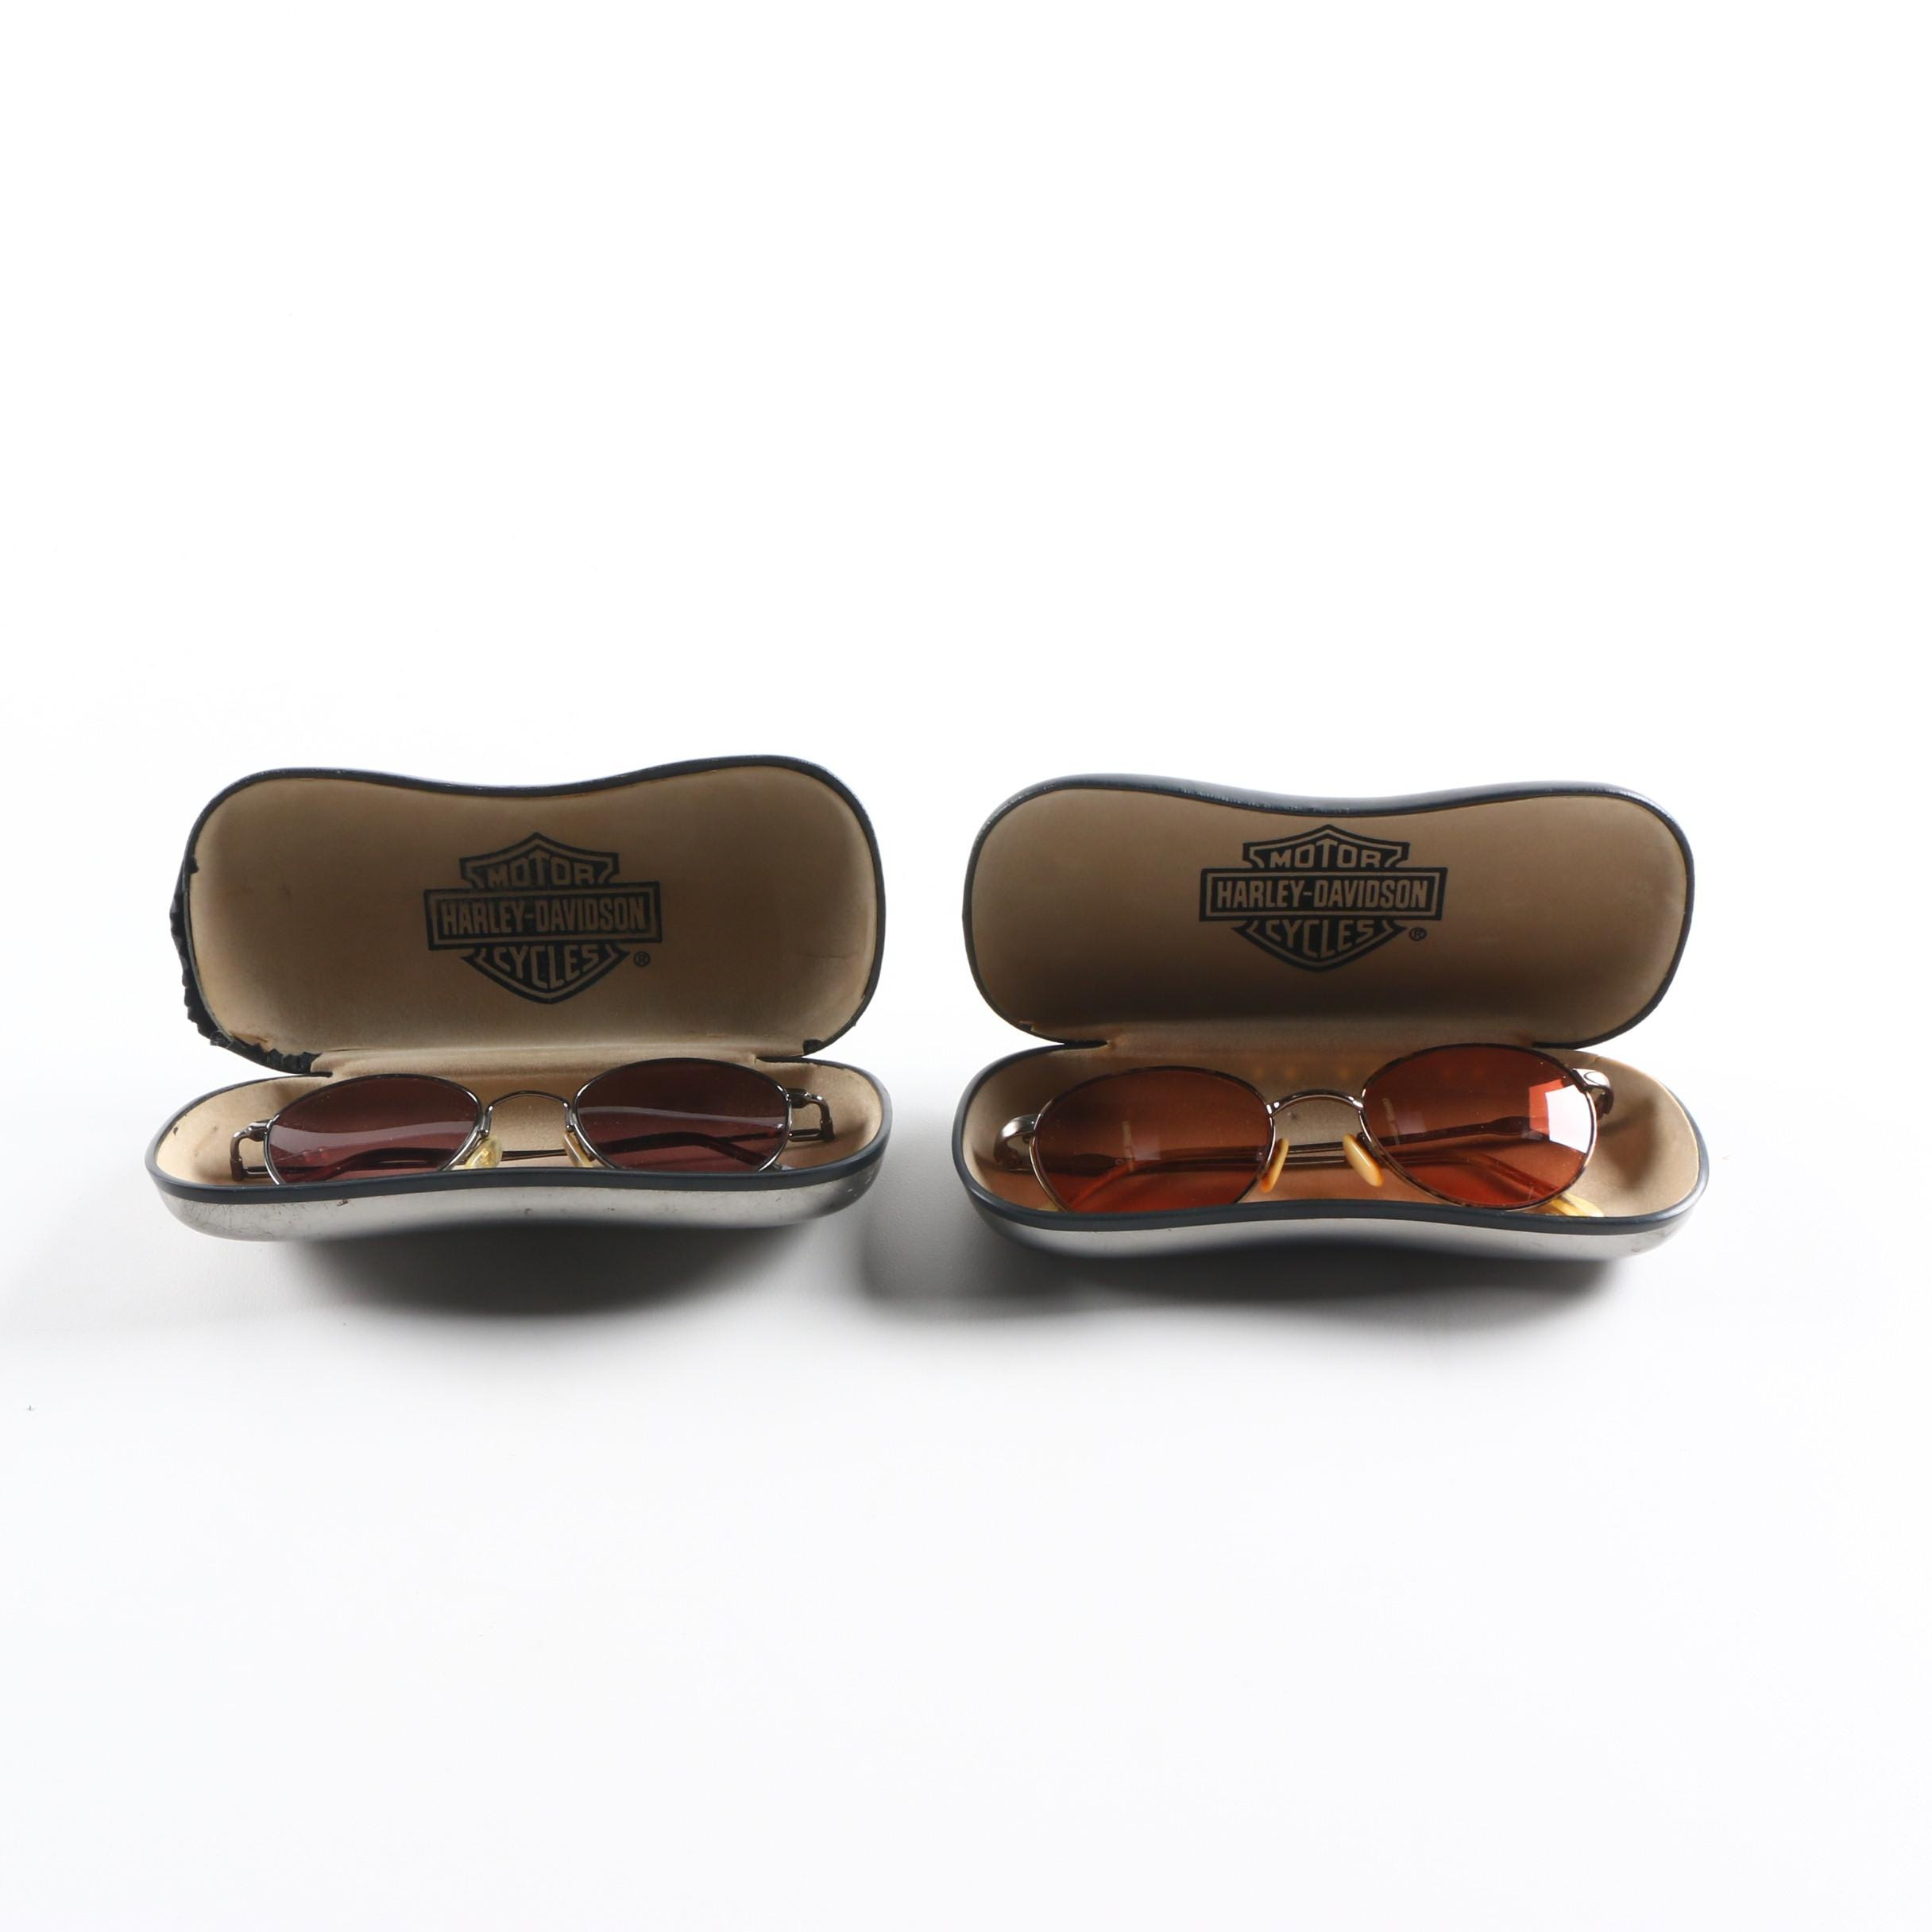 Harley-Davidson Sunglasses and Cases